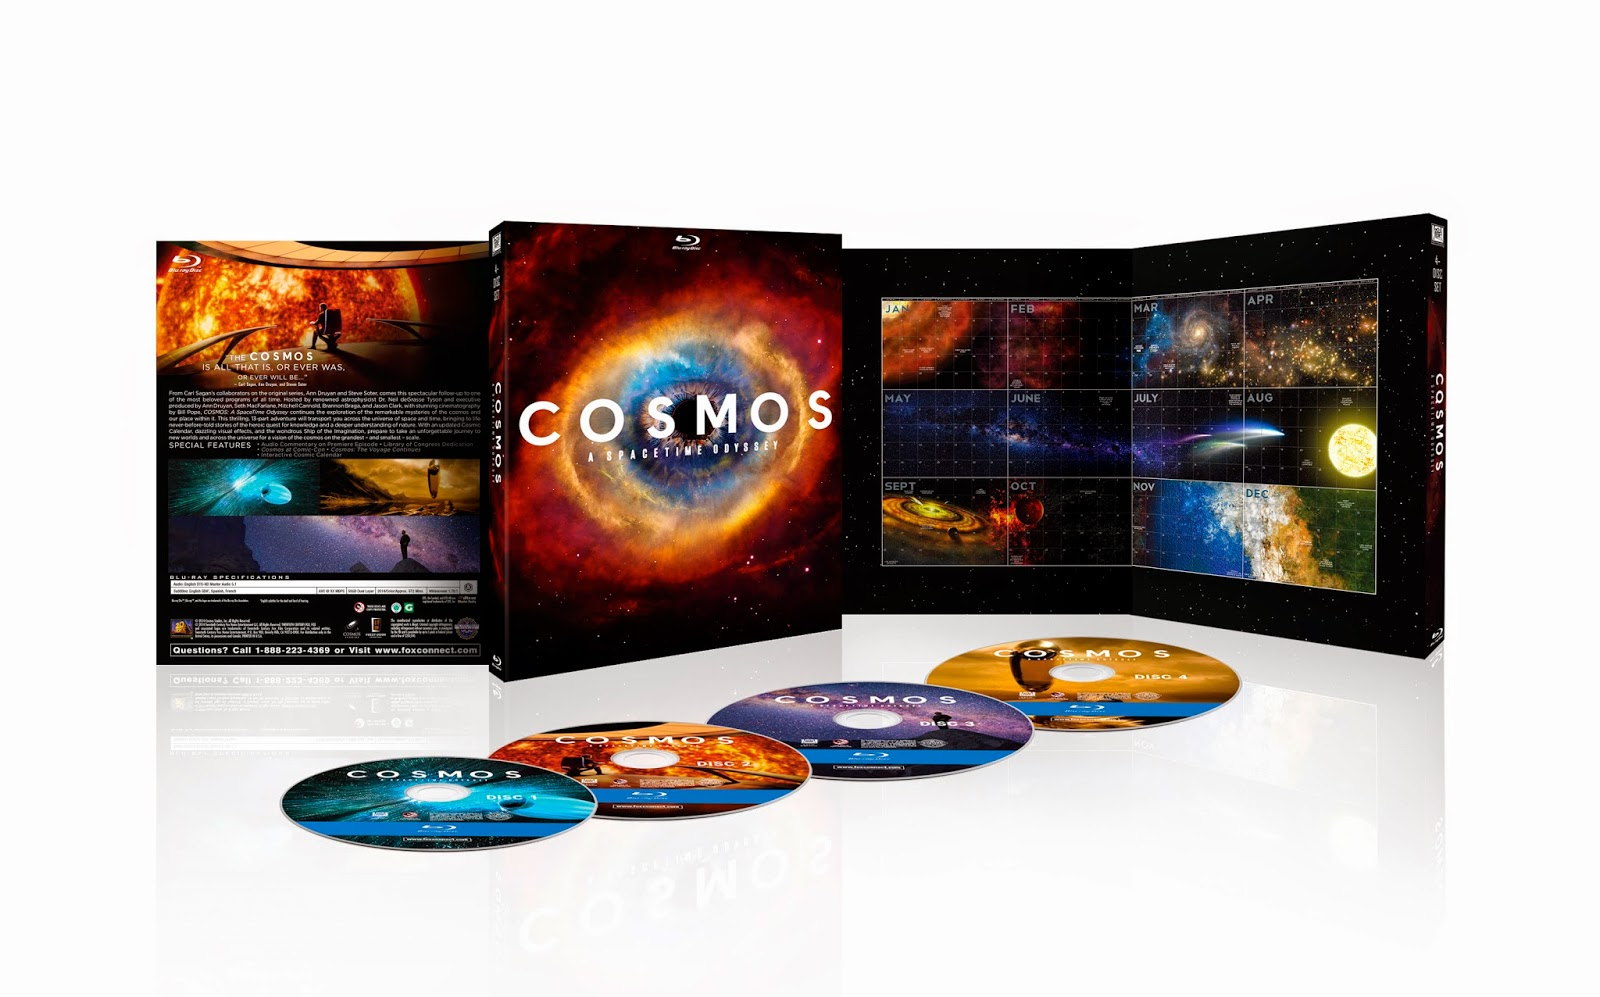 Blu-ray Review - Cosmos: A Spacetime Odyssey